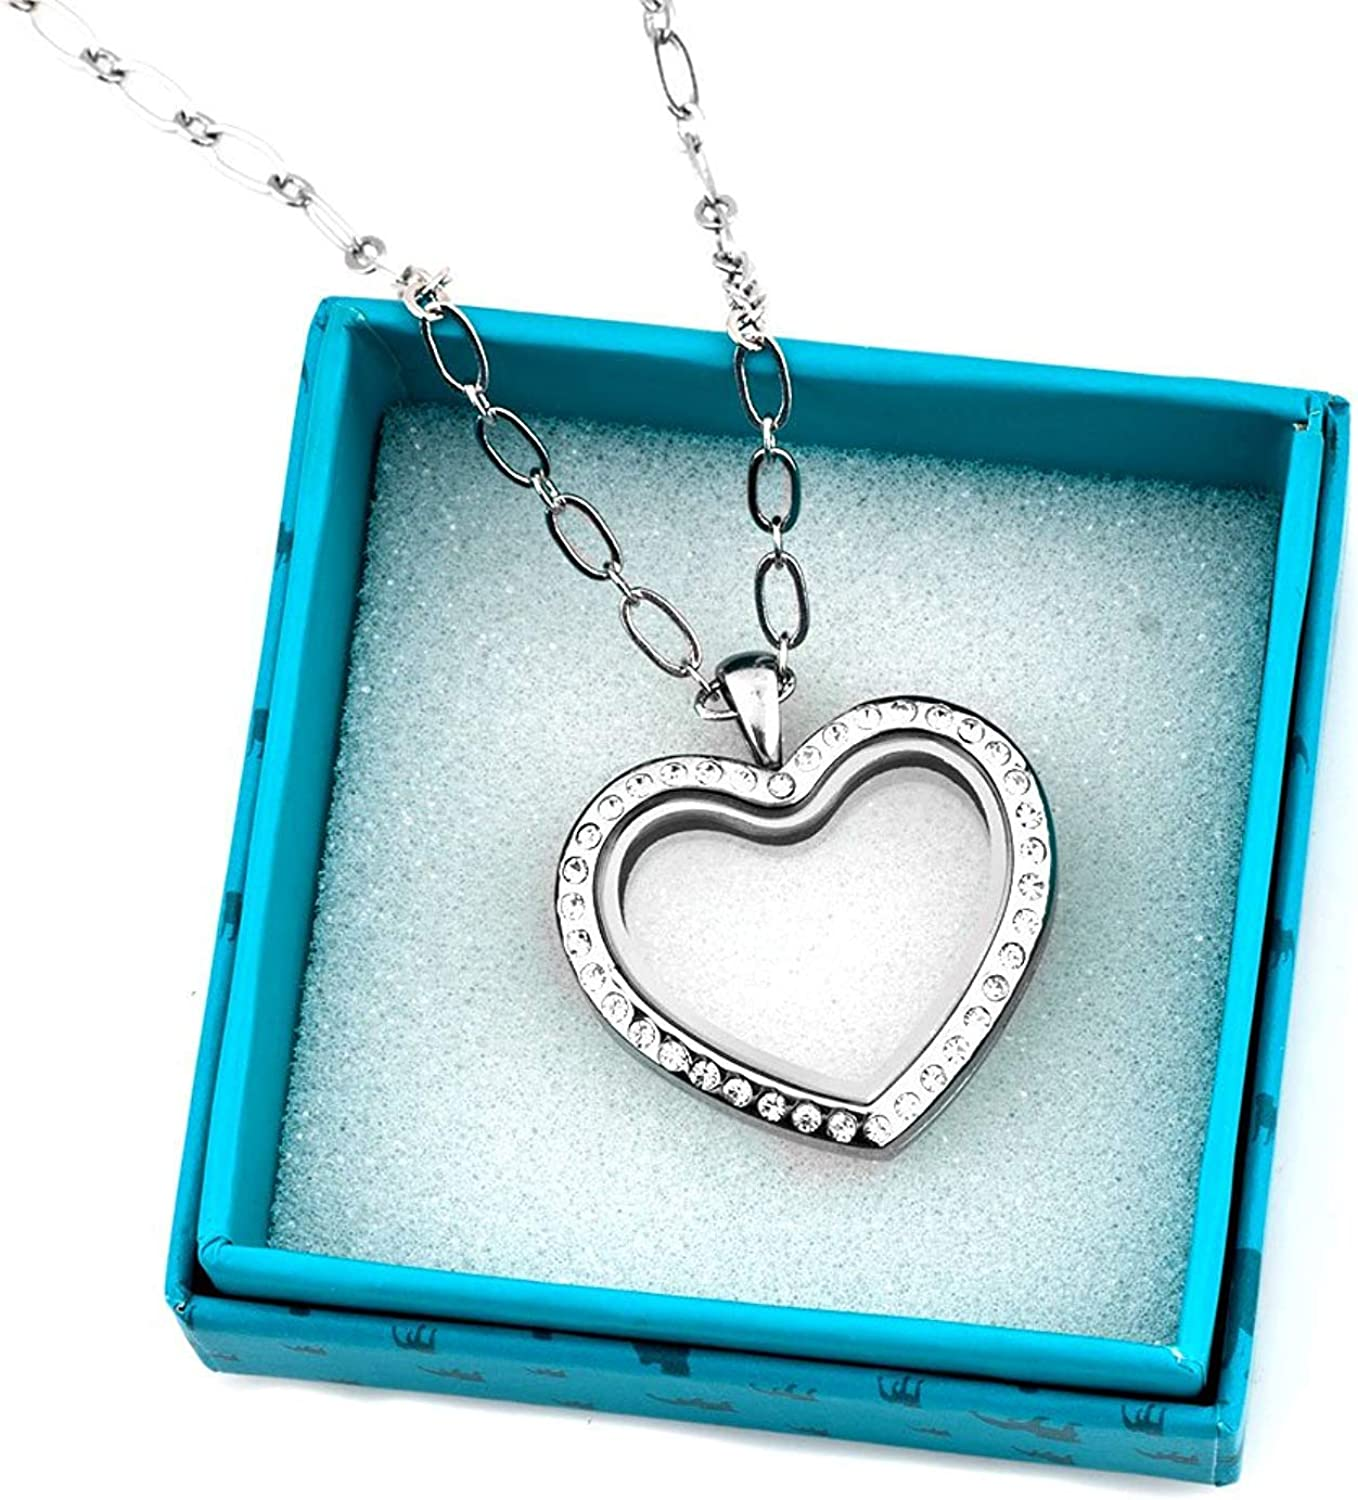 Cherityne Guitar Floating Charm Locket Necklace Pendant with Magnetic Glass